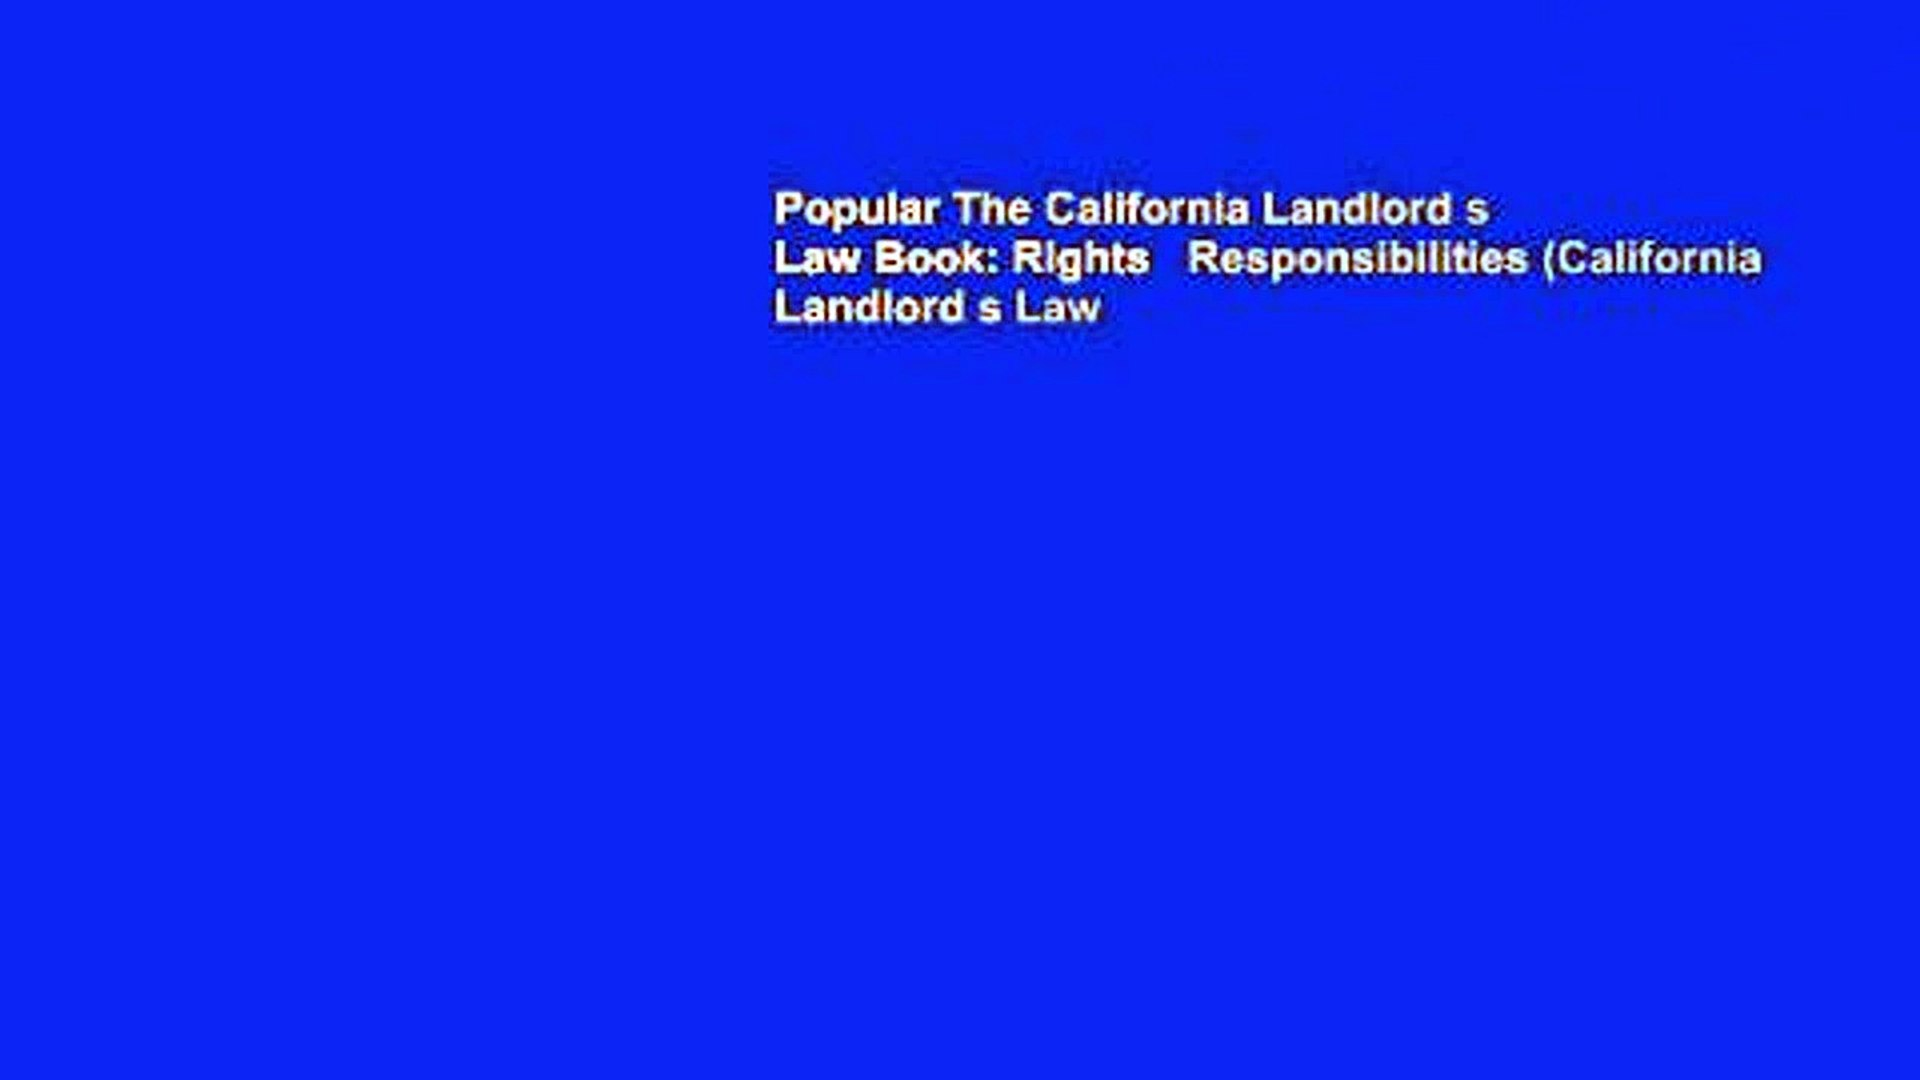 Popular The California Landlord s Law Book: Rights   Responsibilities (California Landlord s Law